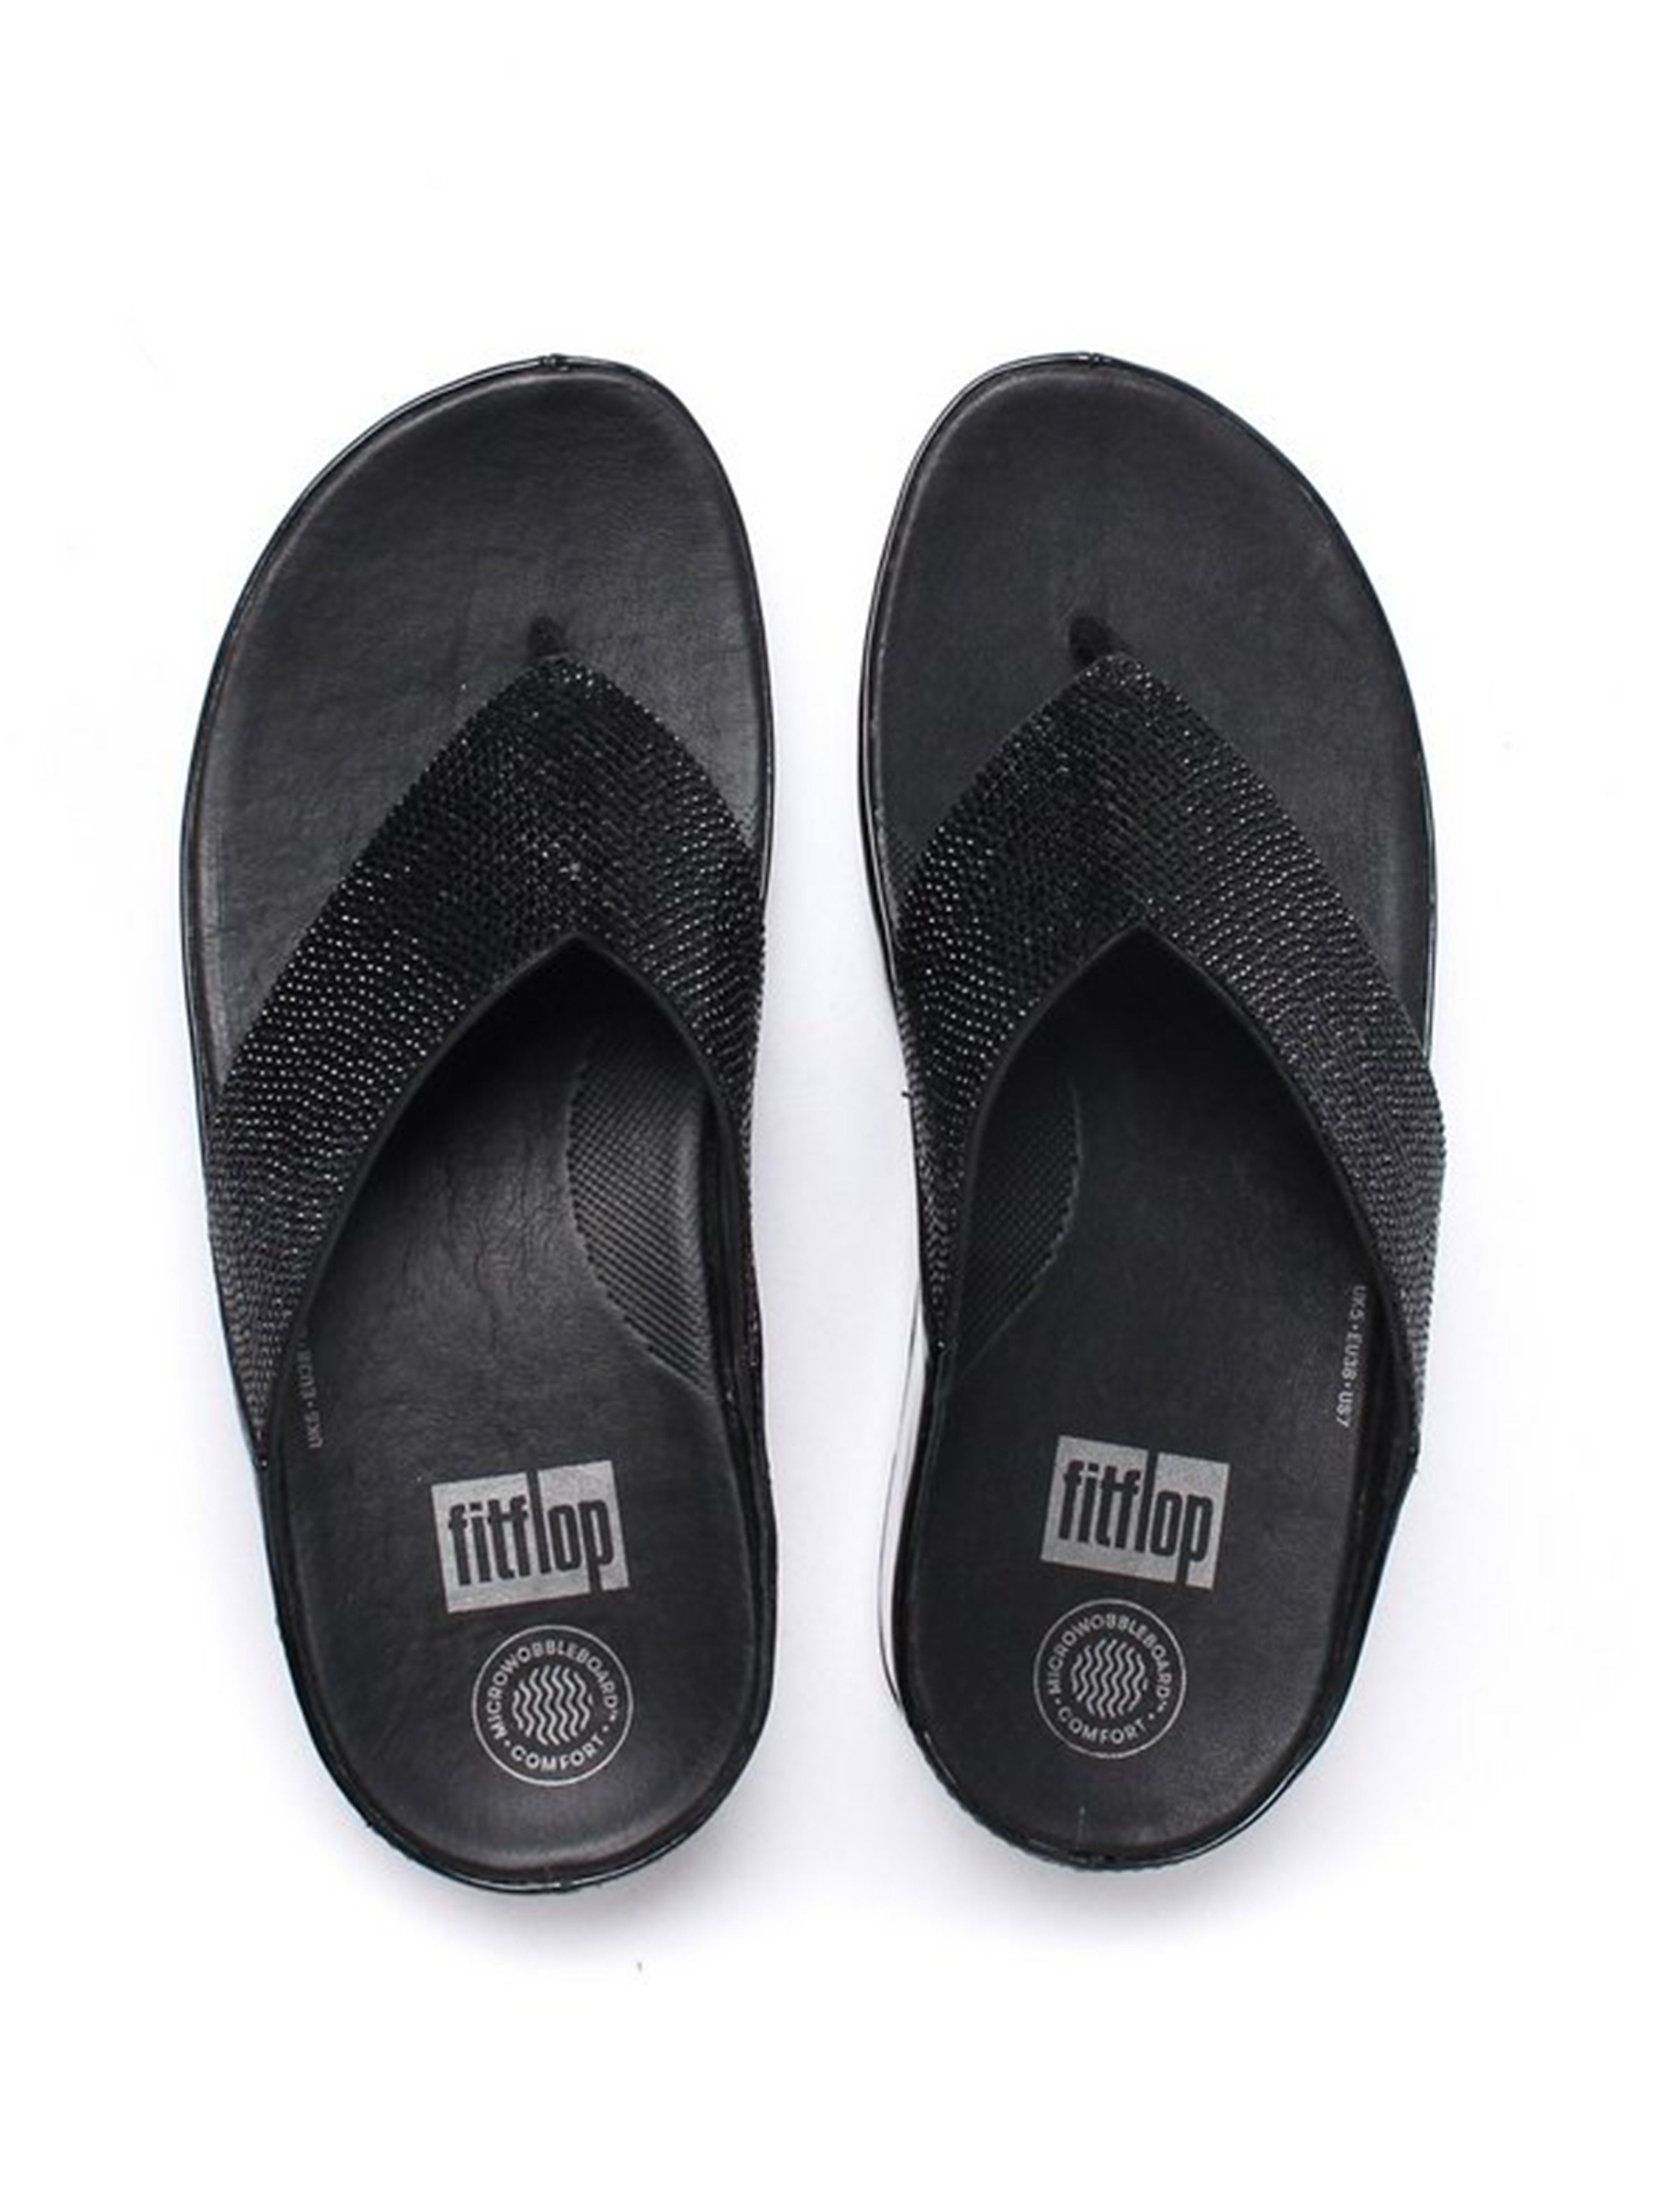 FitFlop Women's Crystall Toe-Post Slip On Sandals - Black